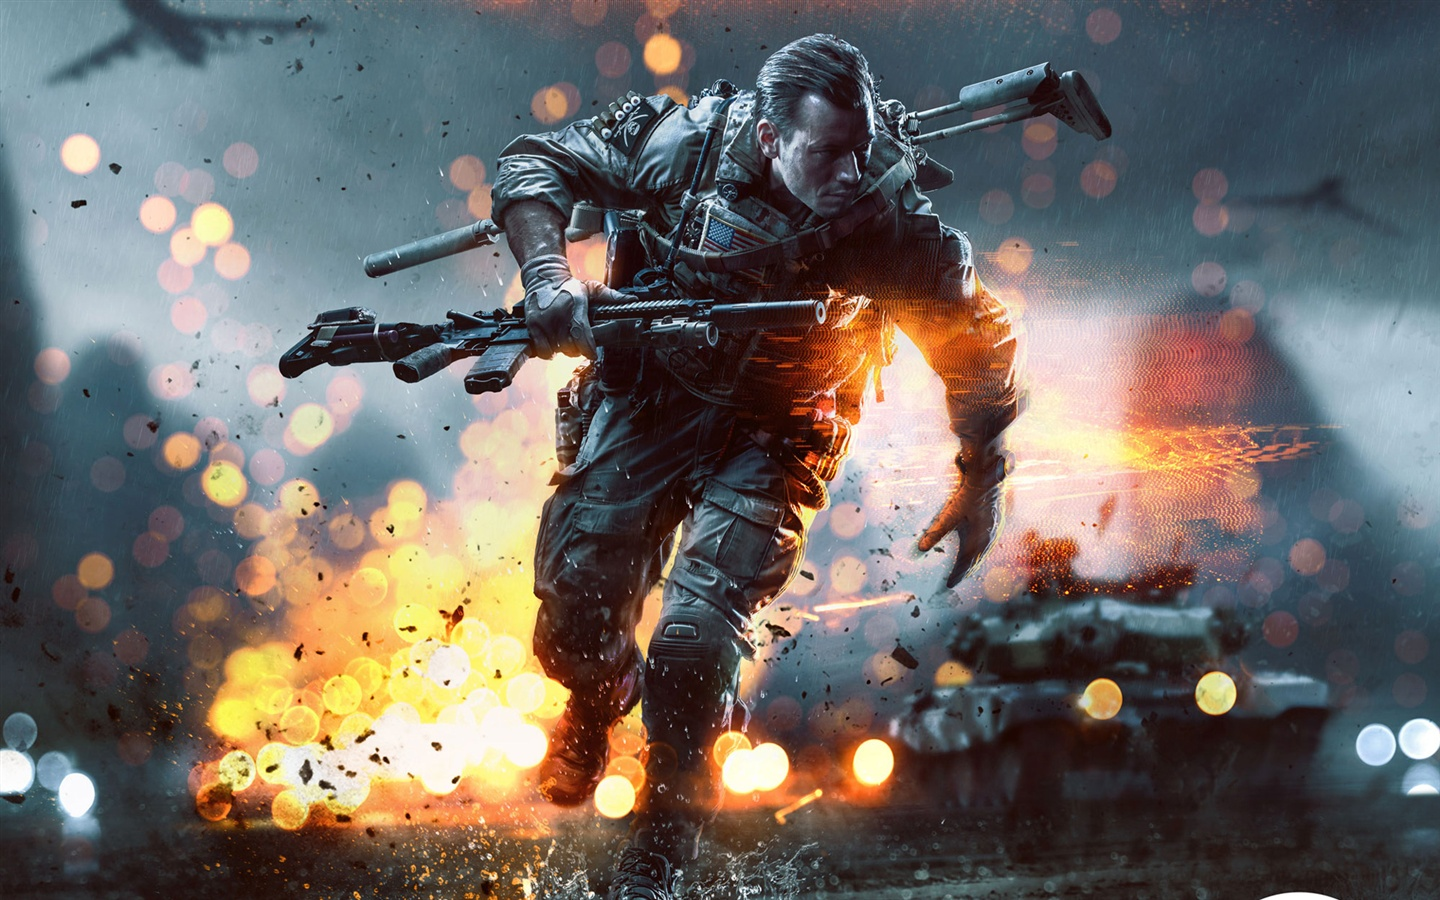 2013 game battlefield 4 wallpaper 1440x900 resolution